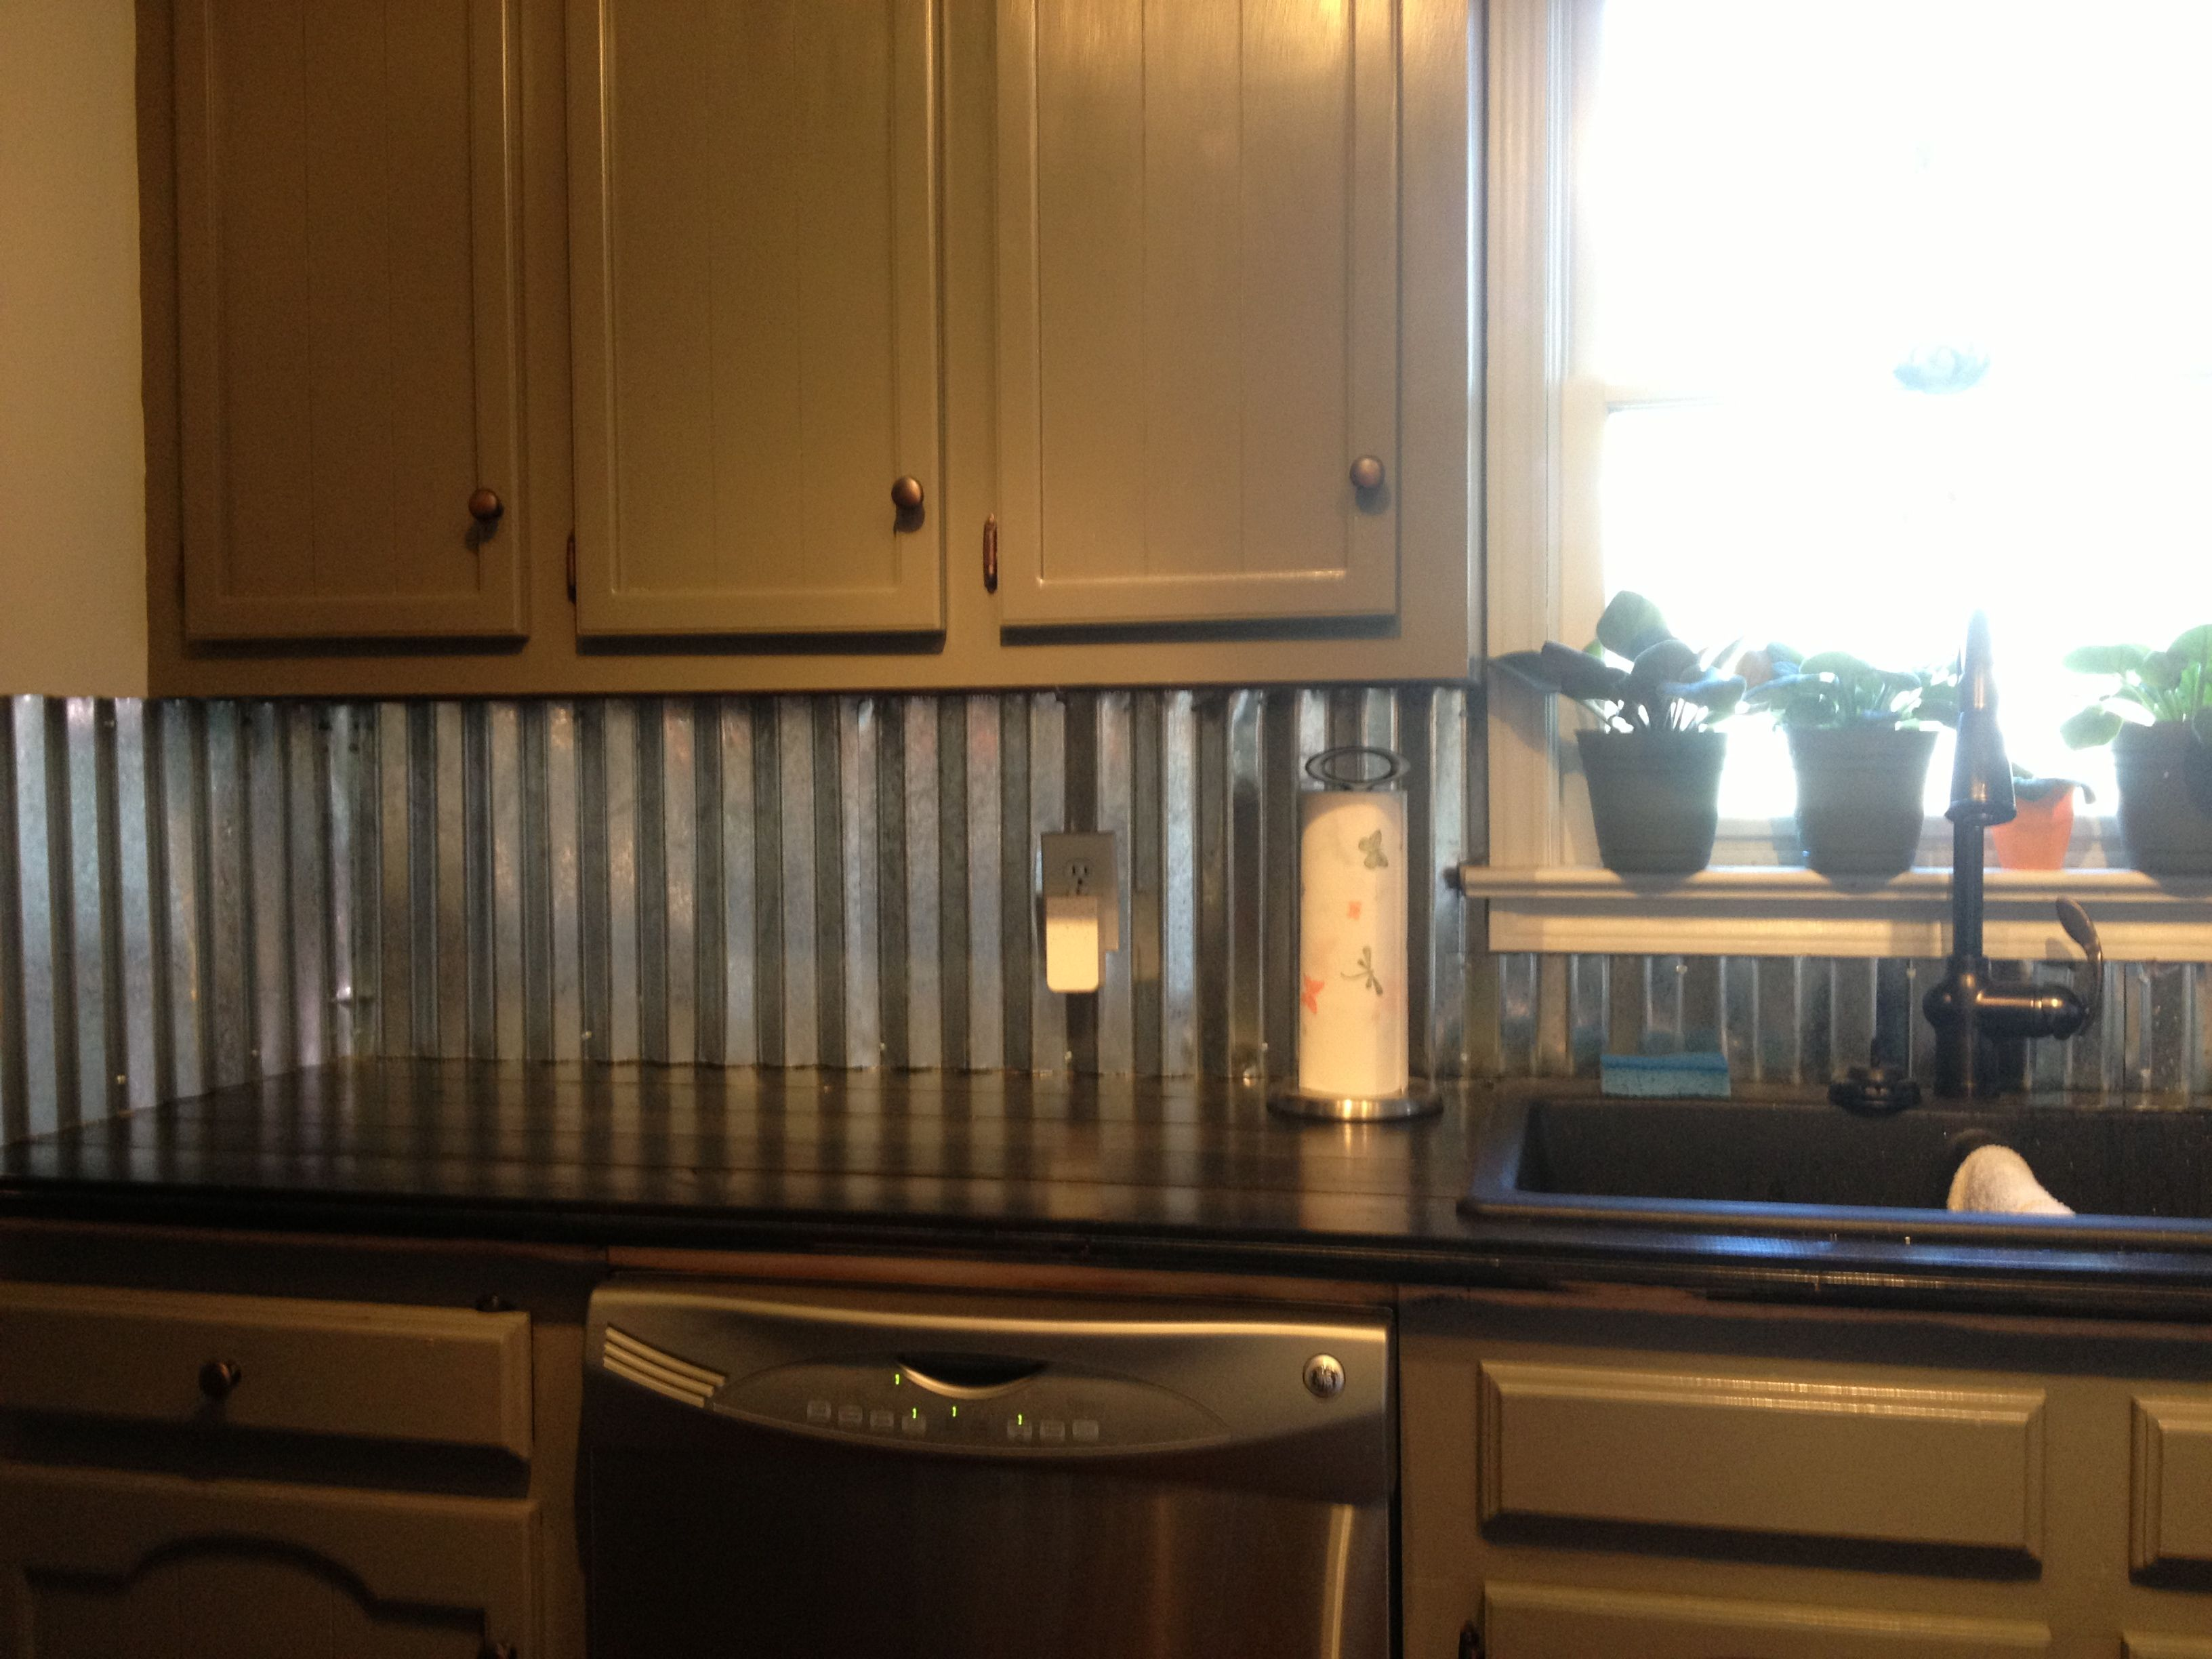 Corrugated metal backsplash kitchen counter tops for Kitchen colors with white cabinets with rusted metal wall art